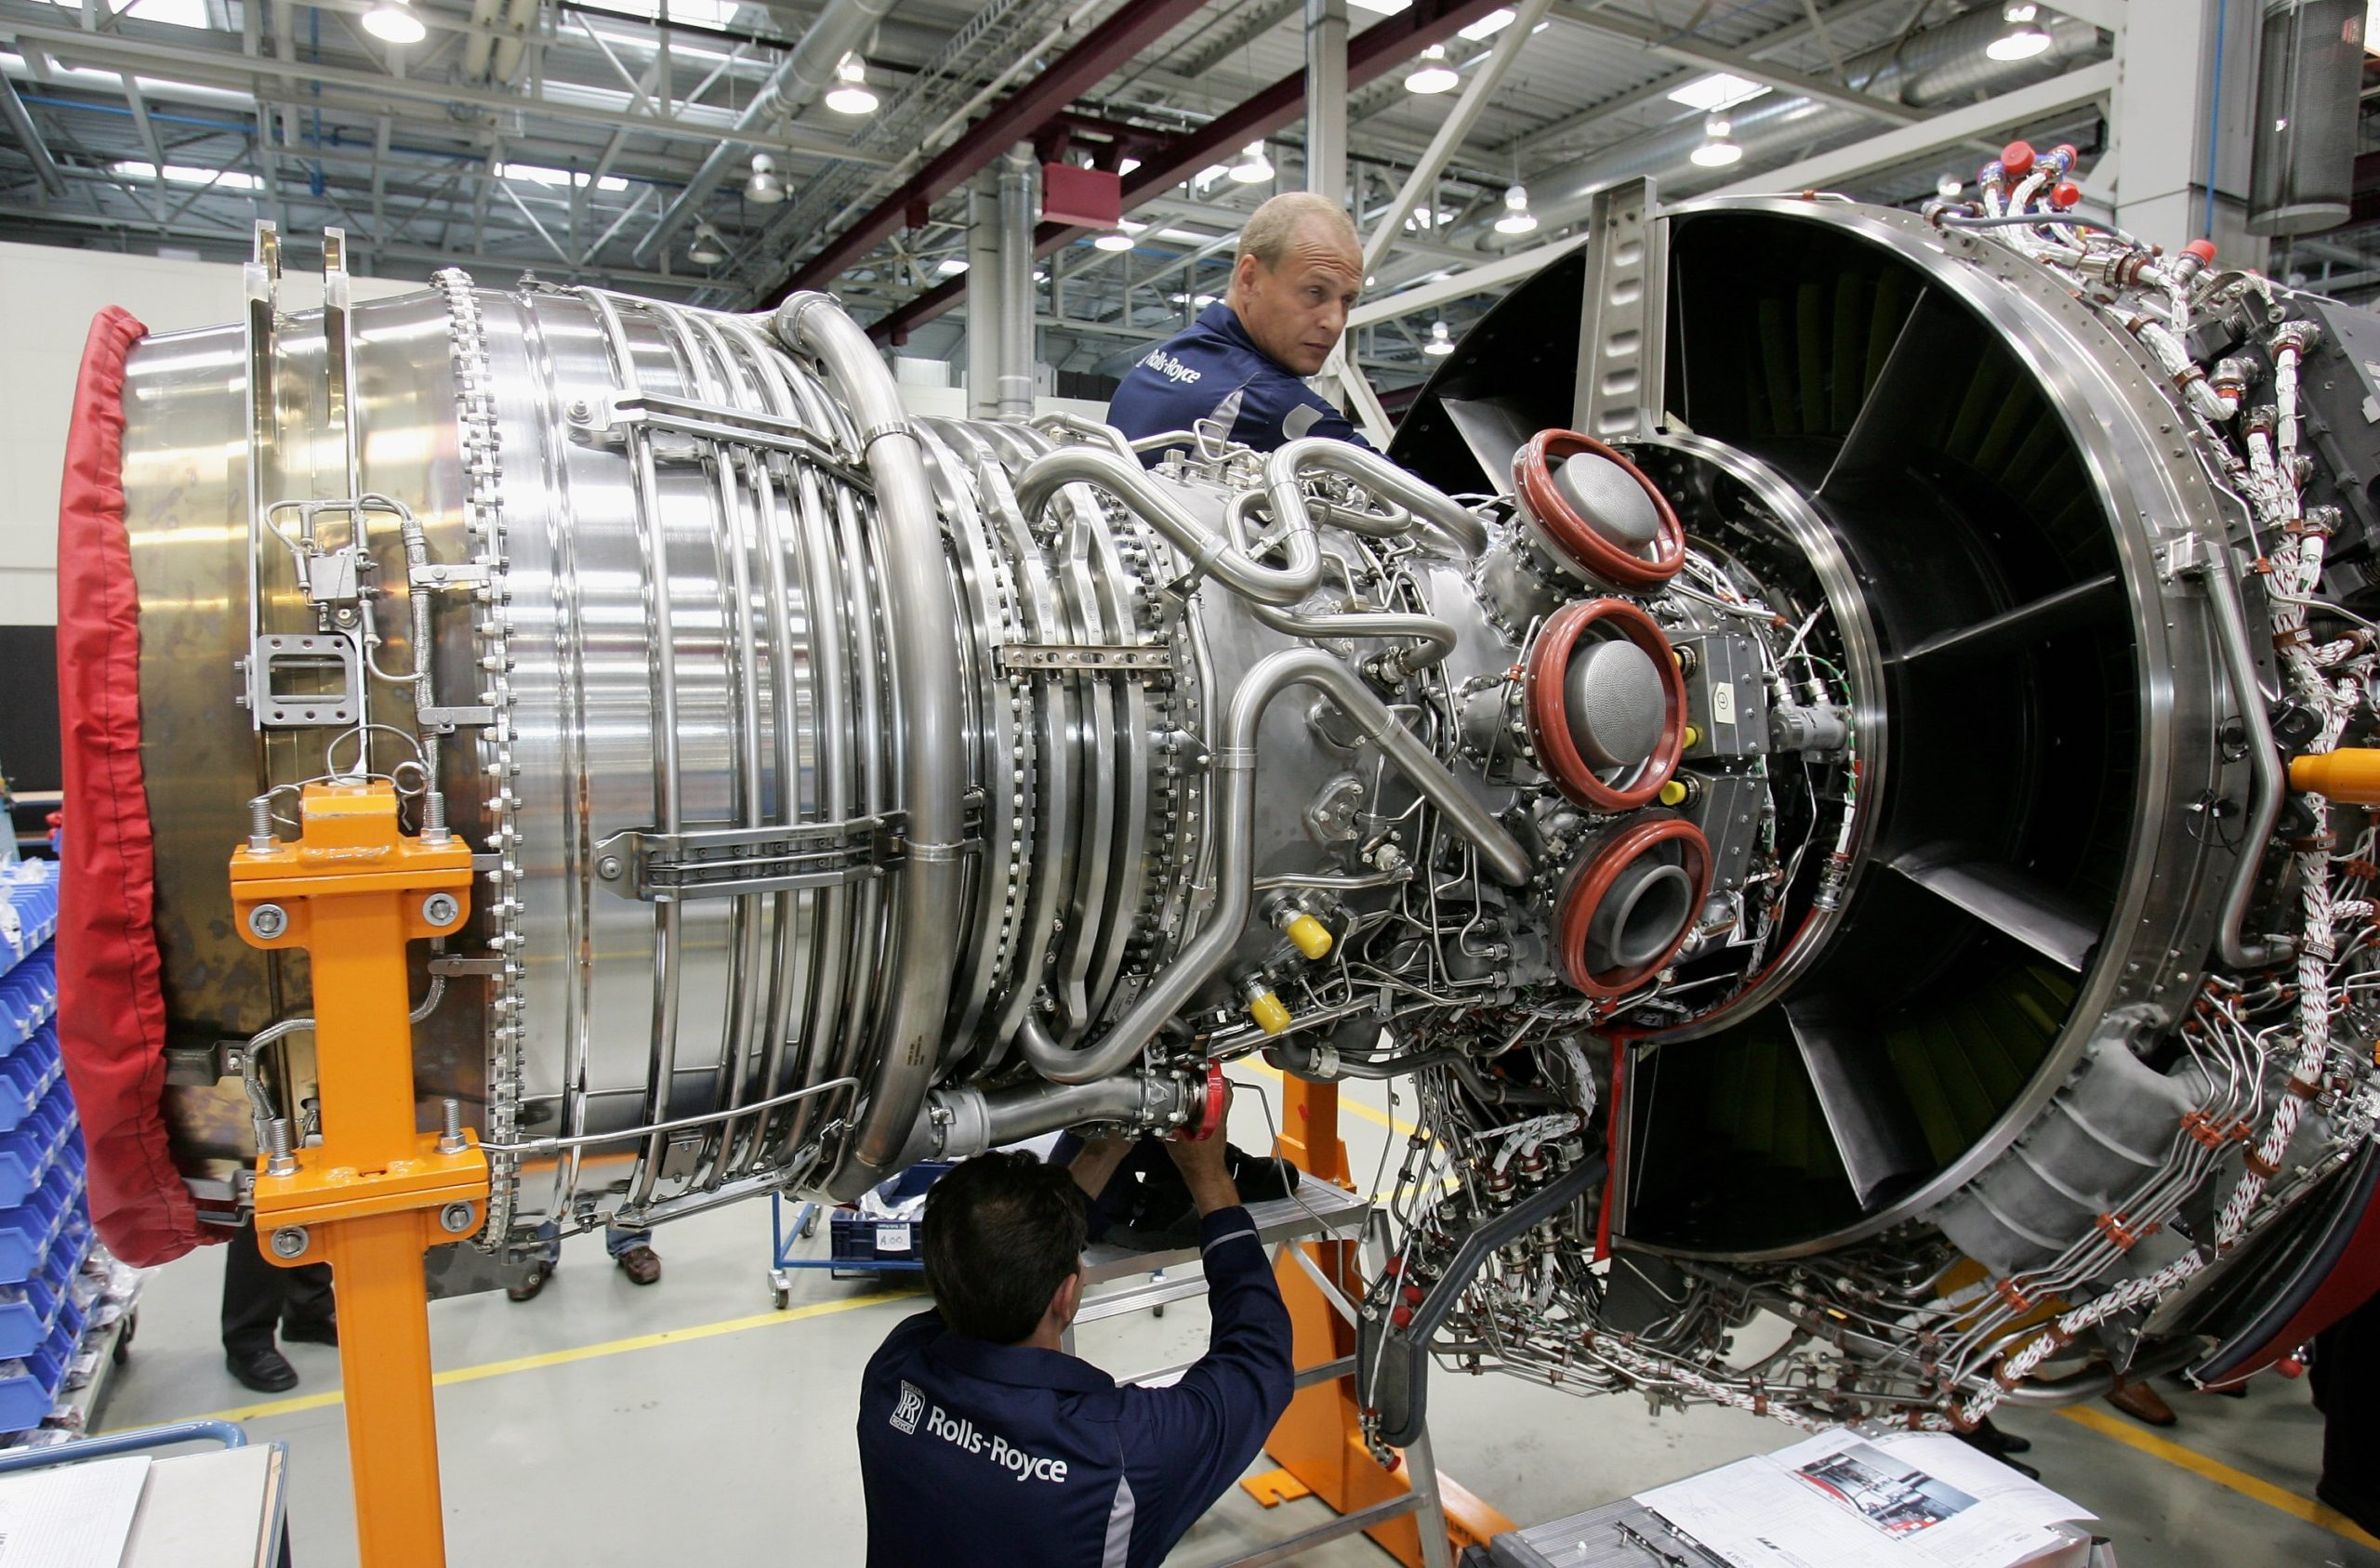 Workers assemble an aircraft jet engine August 23, 2006 at the Rolls-Royce aircraft engine factory in Berlin, Germany. The factory, a greenfield project built in 1993 in what was East Germany before 1989, produces jet engines for aircraft makers including Airbus and Boeing. The plant's production is also typical of the high-tech exports that make the Germany the world's biggest exporter. (Photo by Sean Gallup/Getty Images)